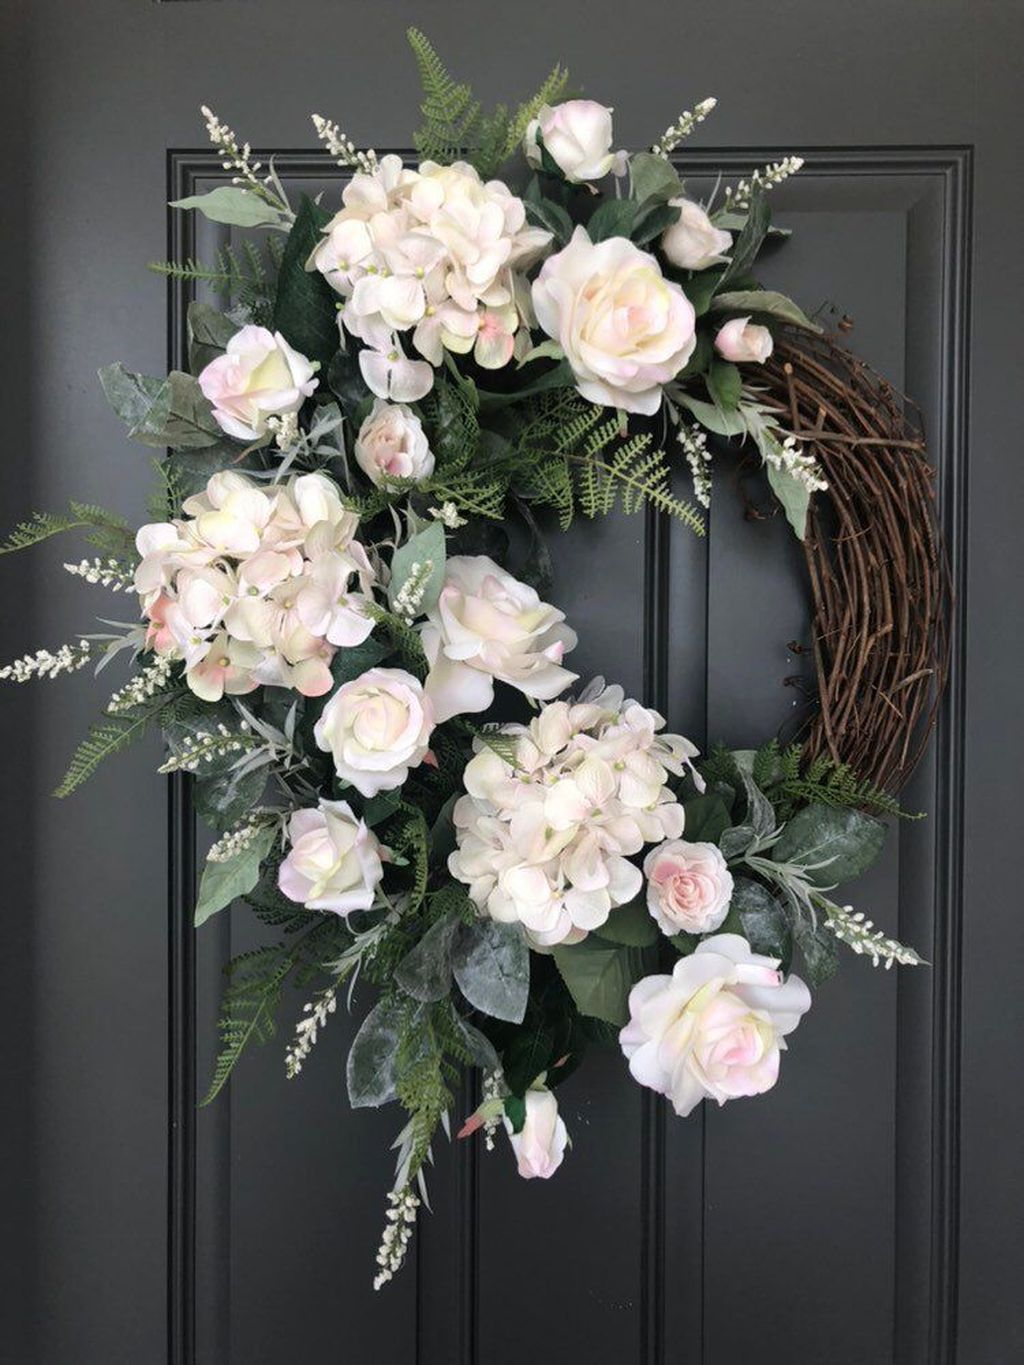 Awesome Spring Wreath Ideas For Front Door Decor 10